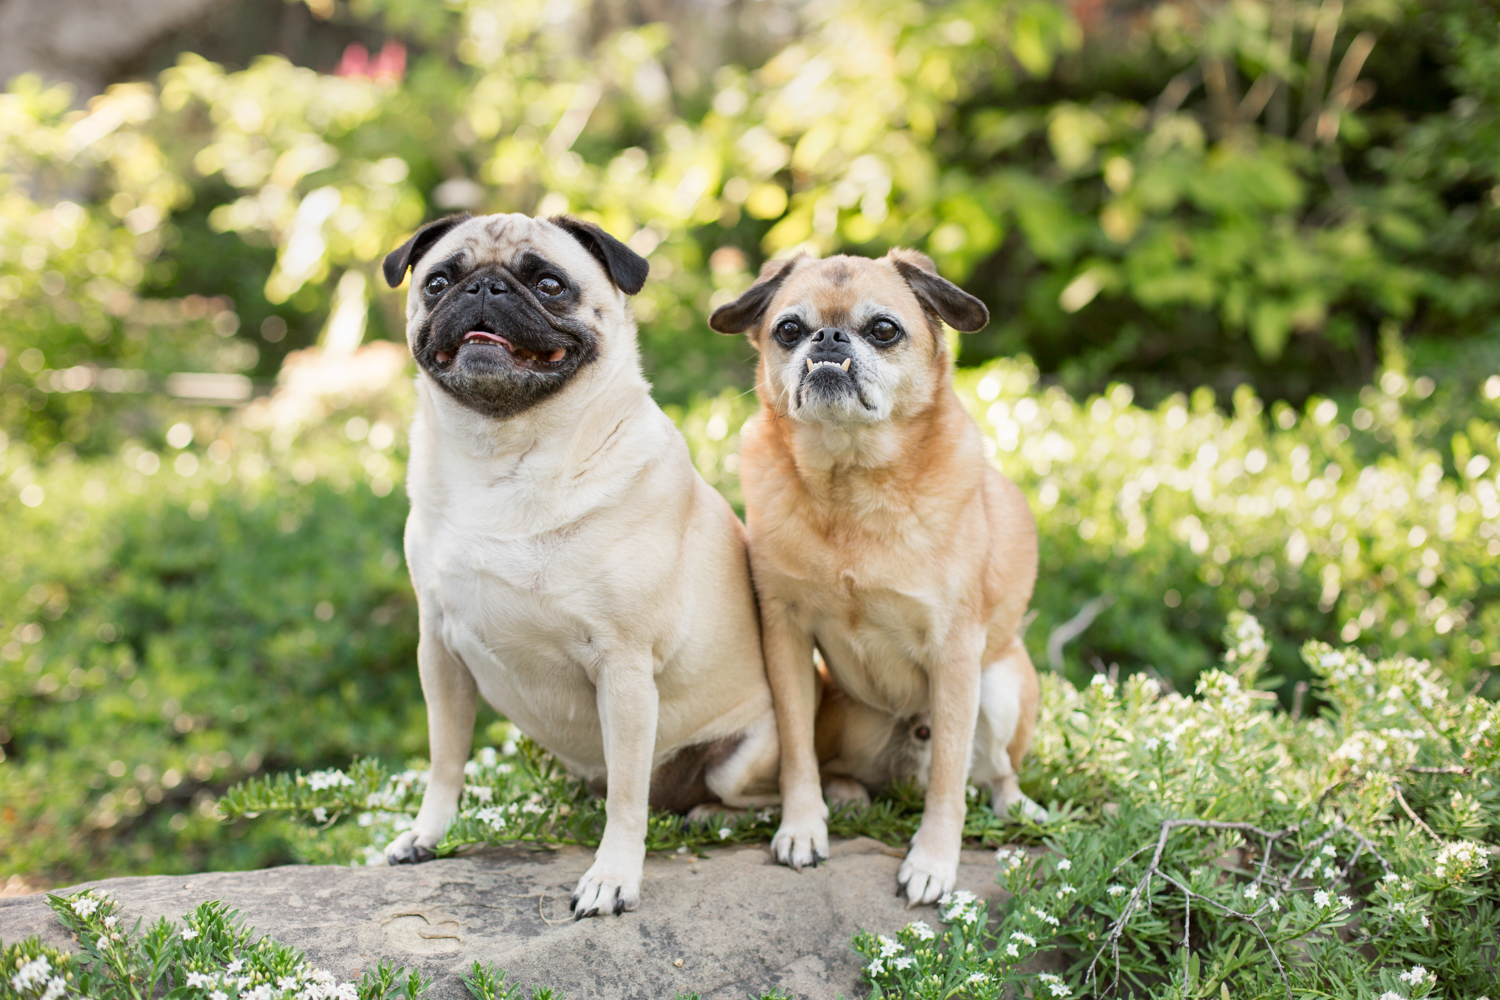 _WebsiteDogs27ShelbyPugslyEdie_077_1500.JPG